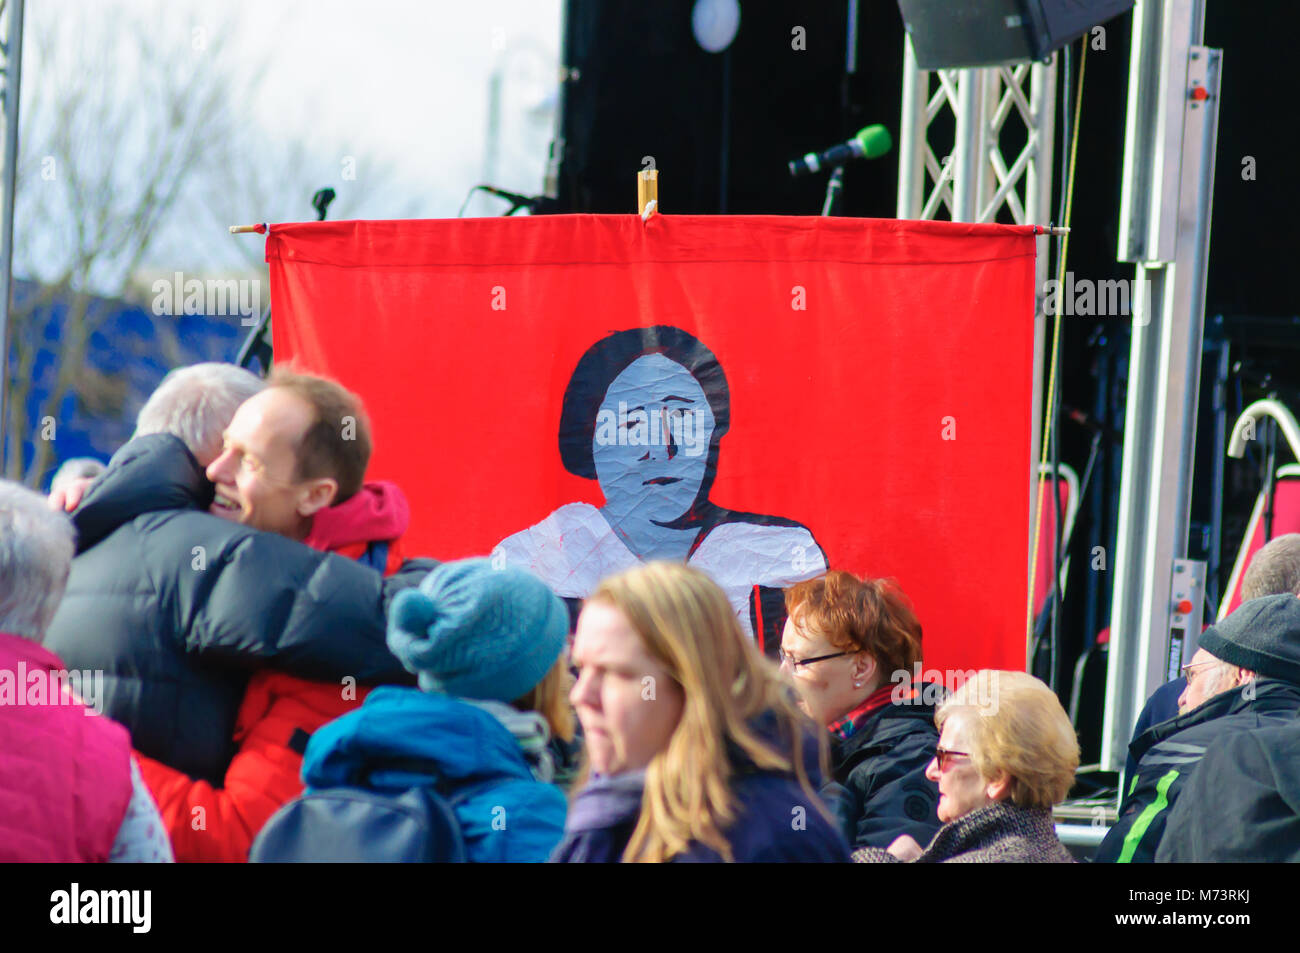 Glasgow, Scotland, UK. 8th March, 2018: On International Women's Day a Statue of Mary Barbour was unveiled in - Stock Image